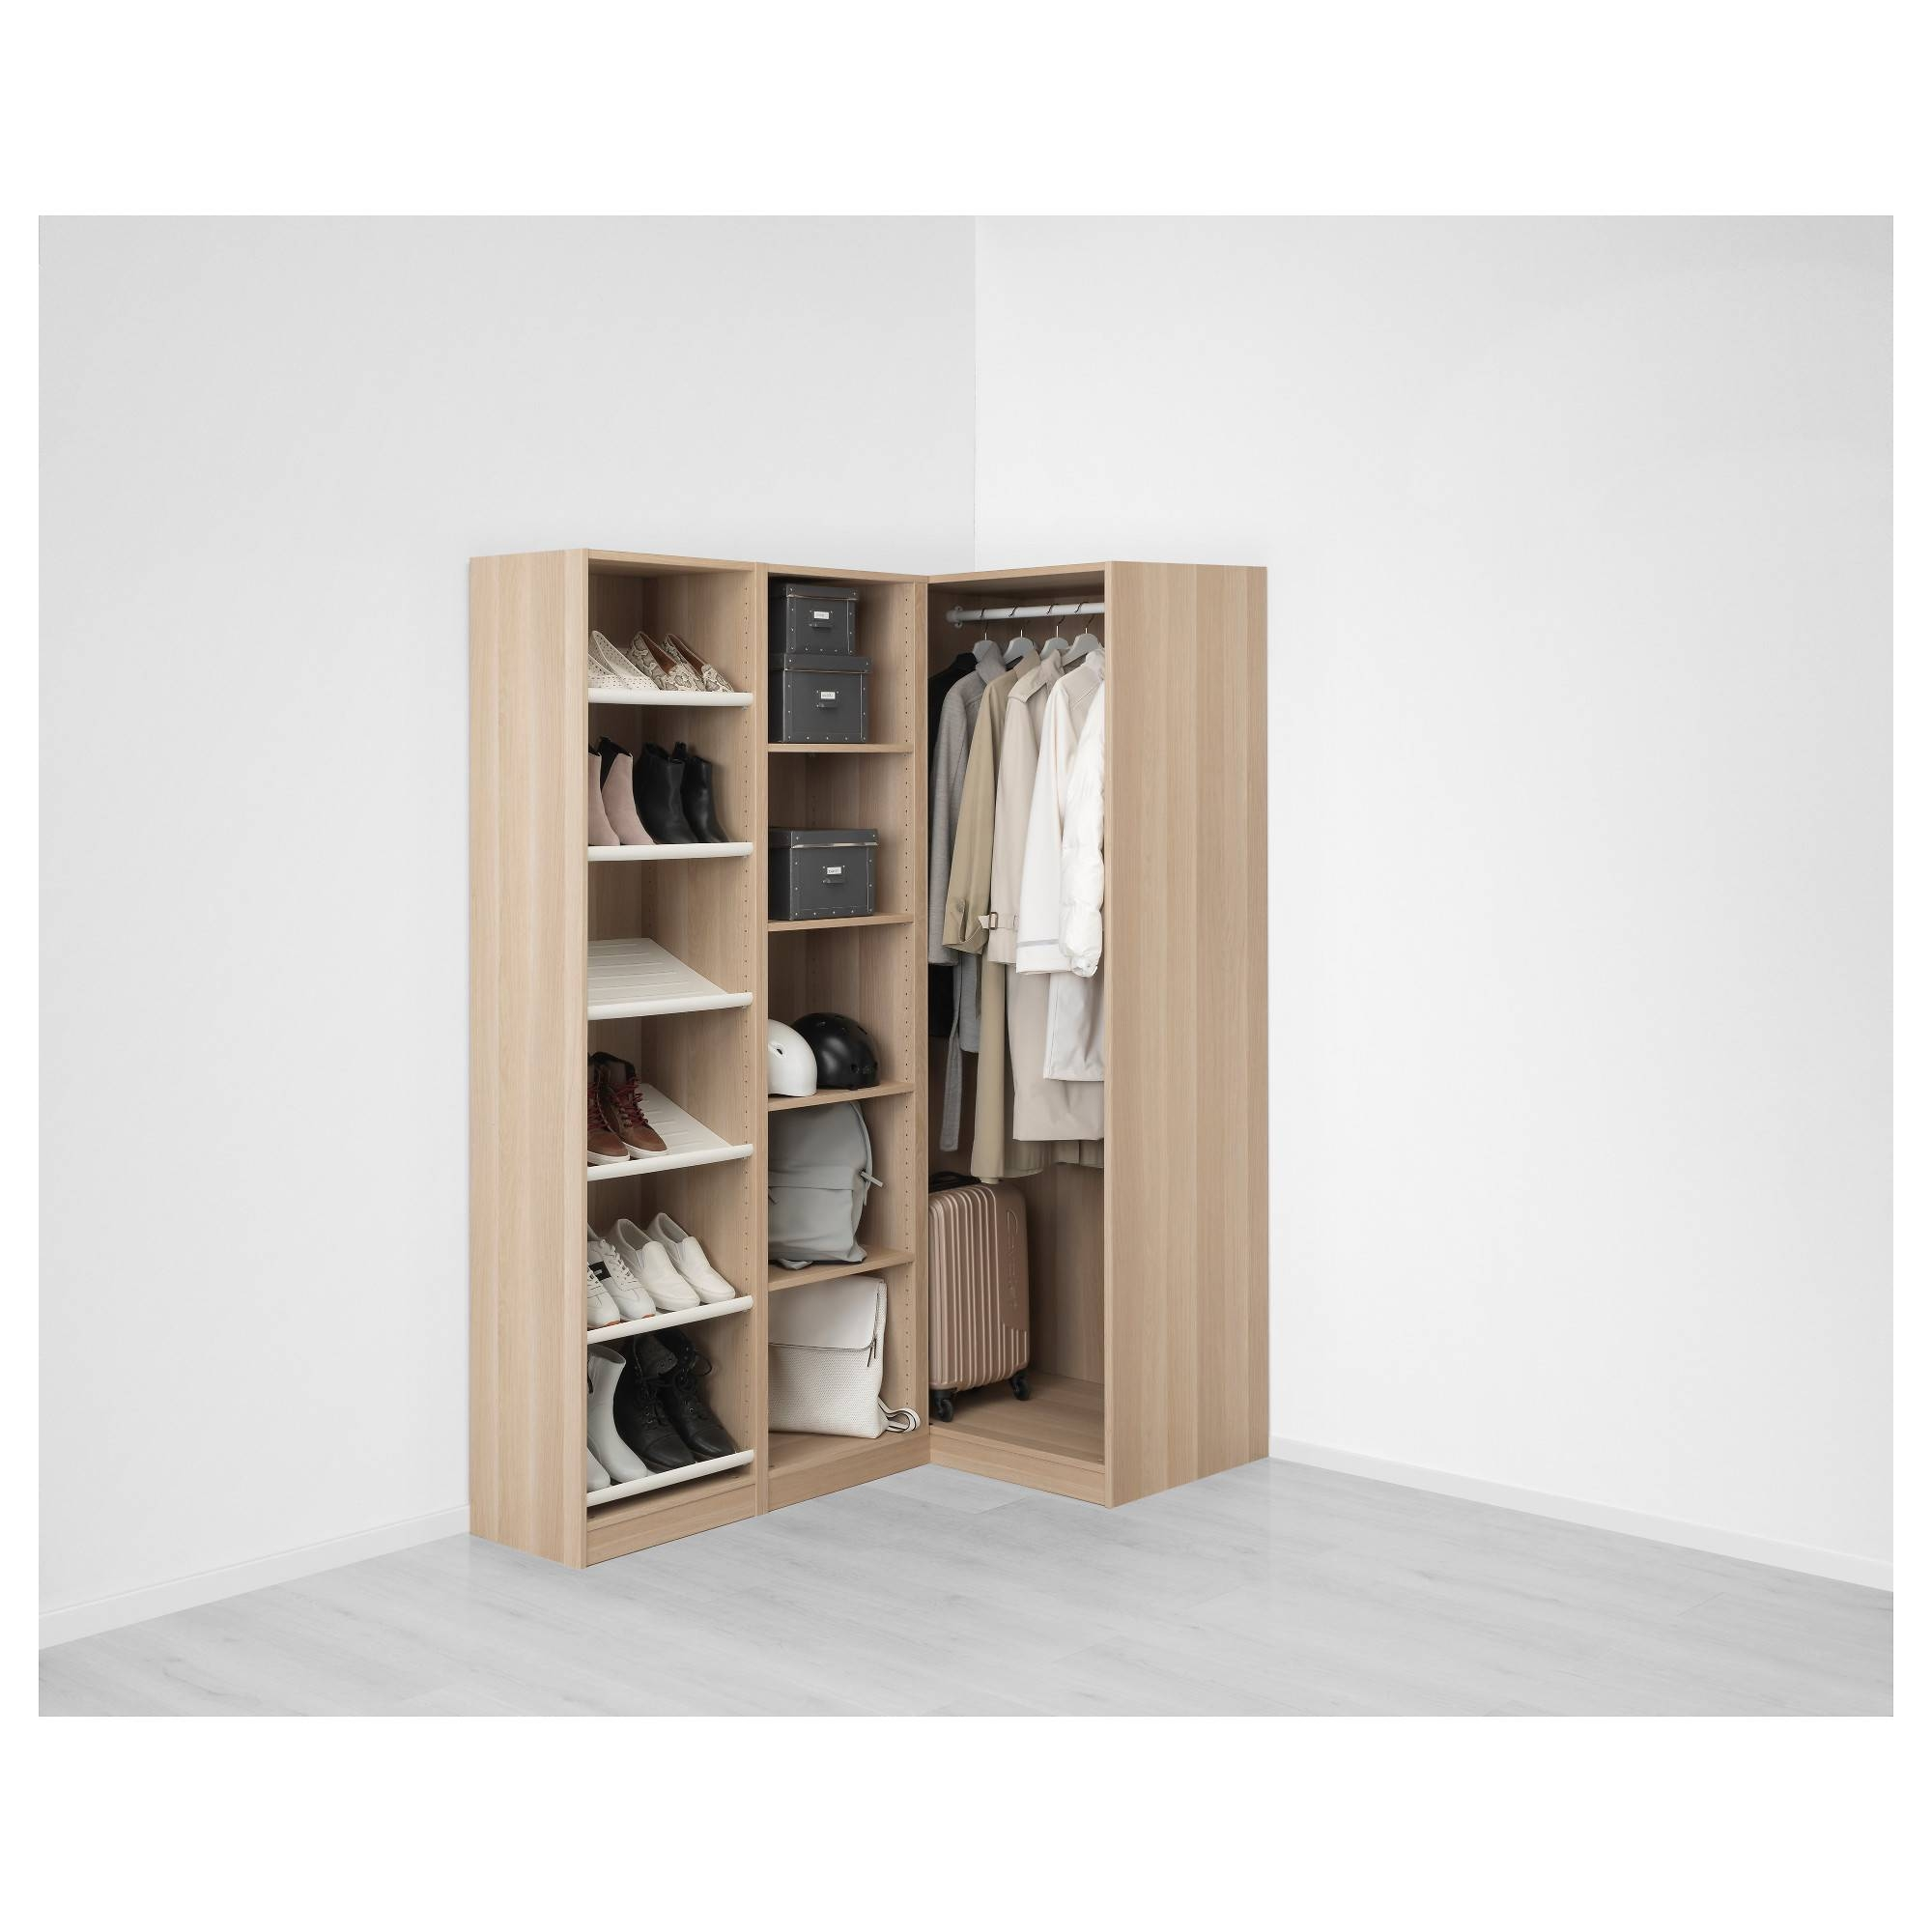 Pax Corner Wardrobe White Stained Oak Effect/nexus Vikedal 160 regarding Oak Corner Wardrobes (Image 12 of 15)